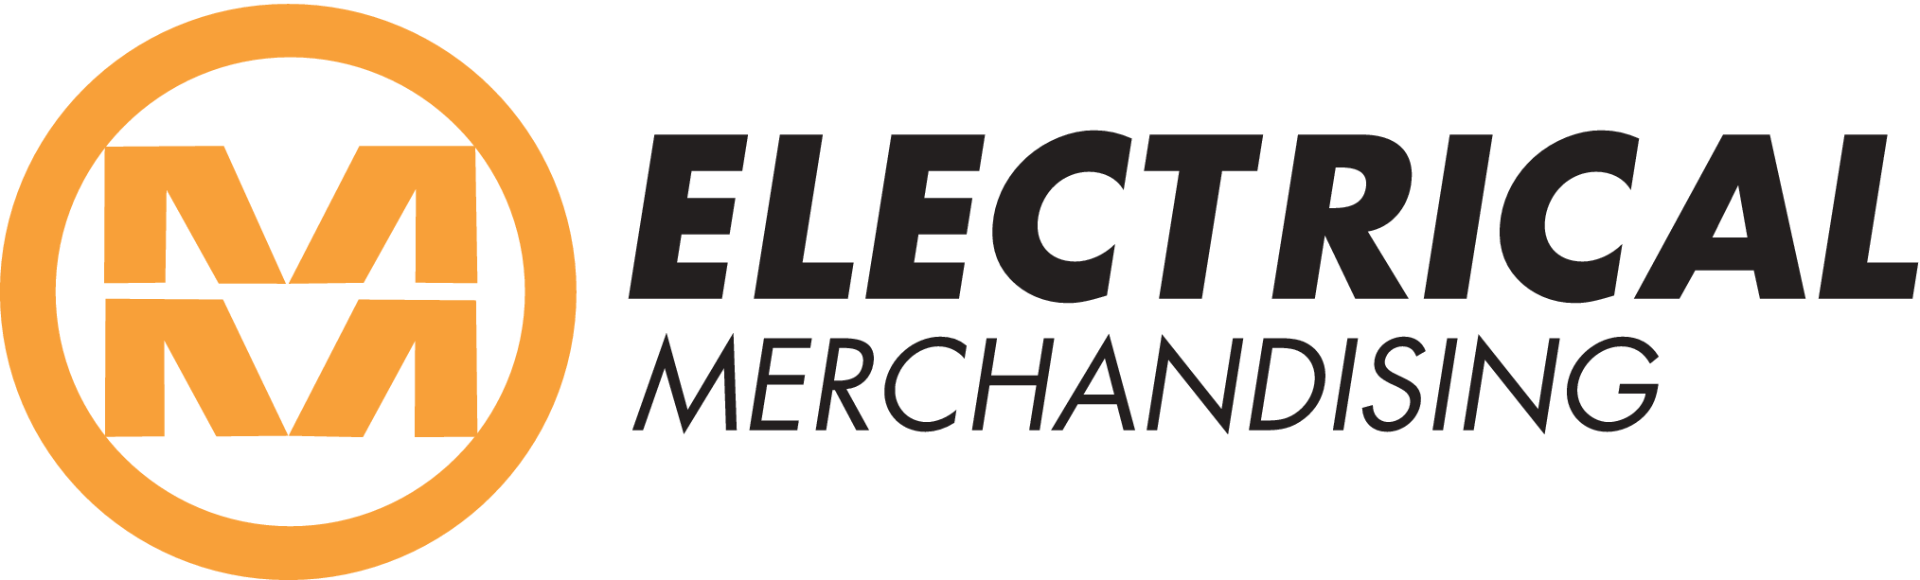 MMElectrical